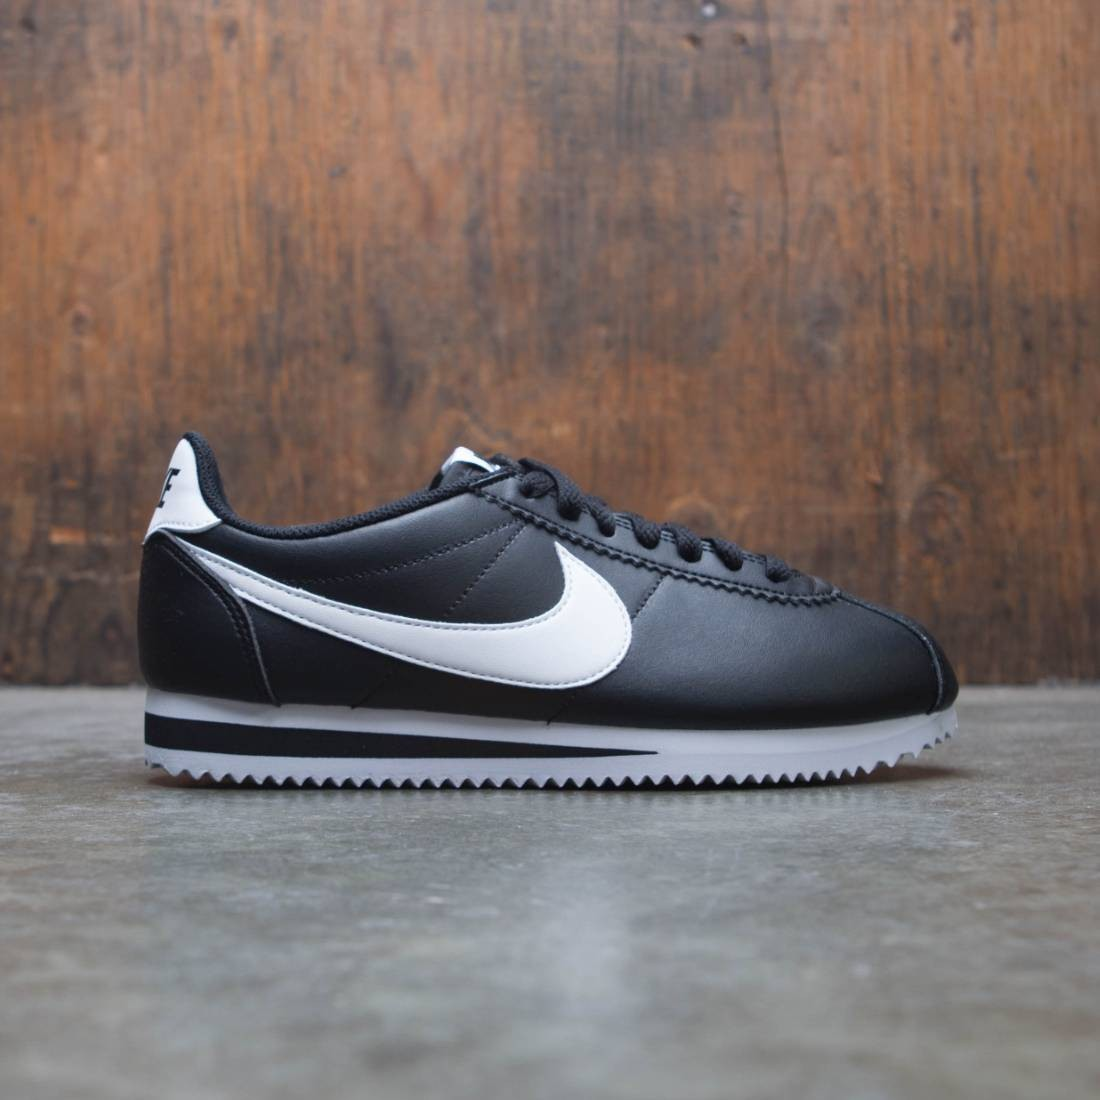 26da1dcc34a1 nike women classic cortez leather black white white